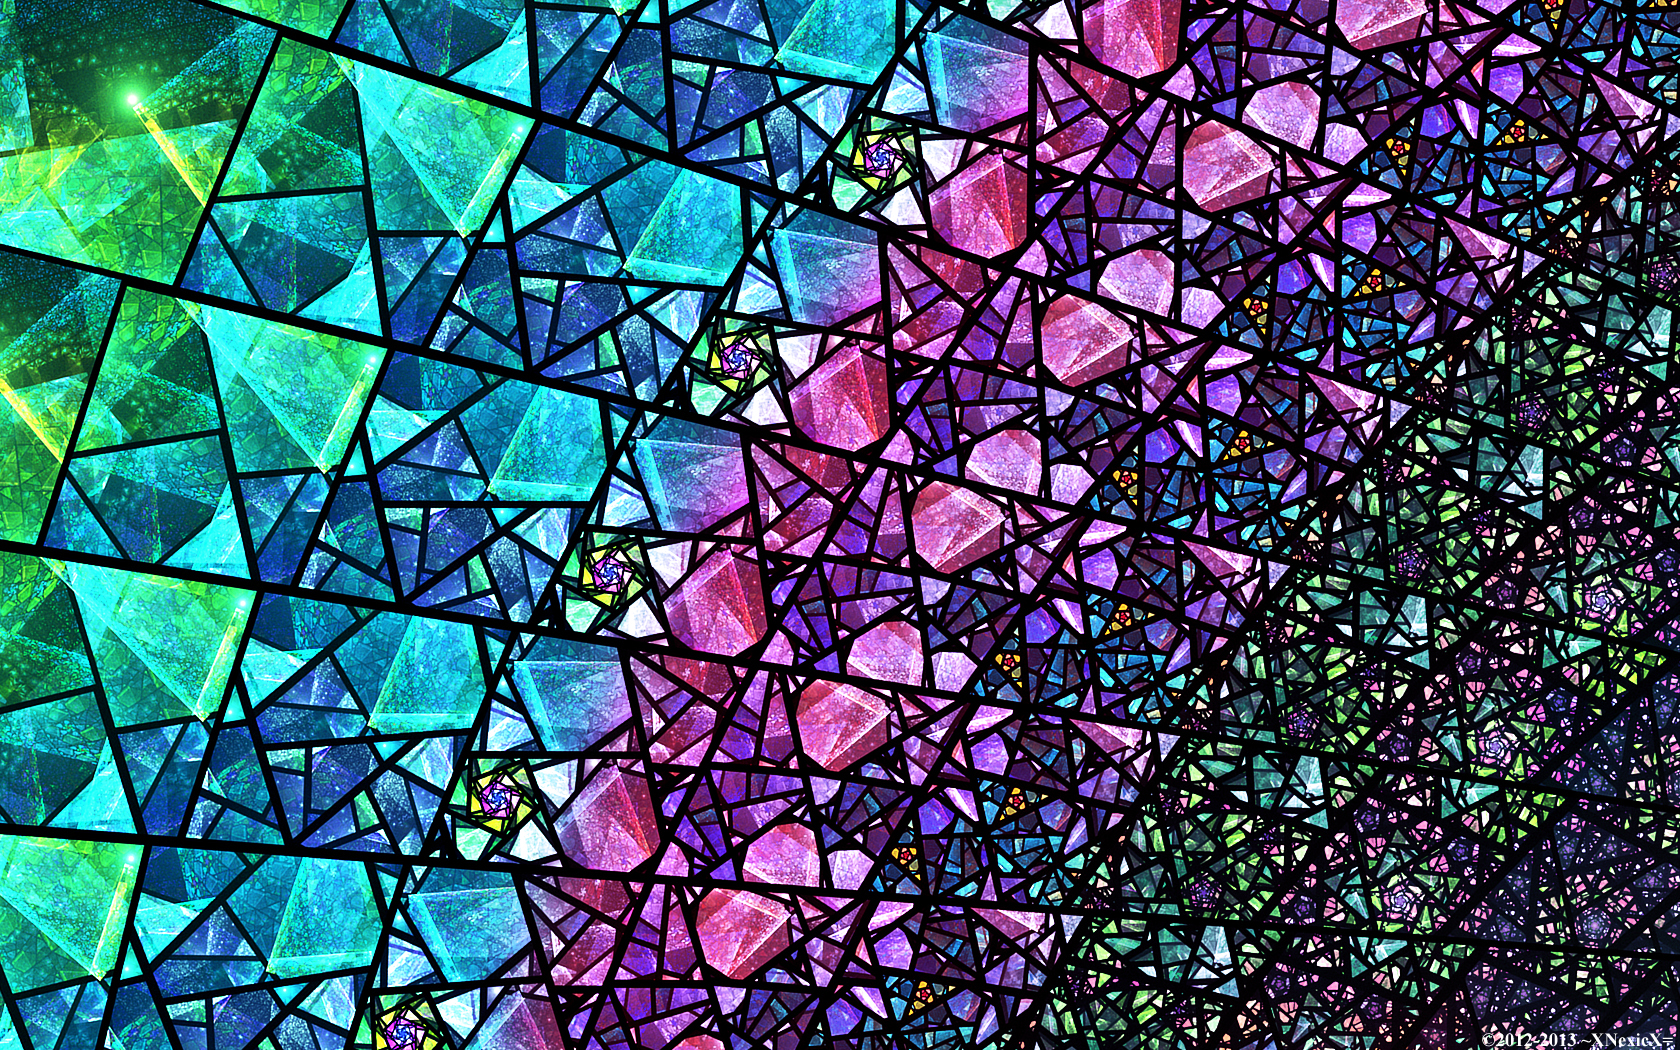 stained_glass_by_xnexicx-d58al1z